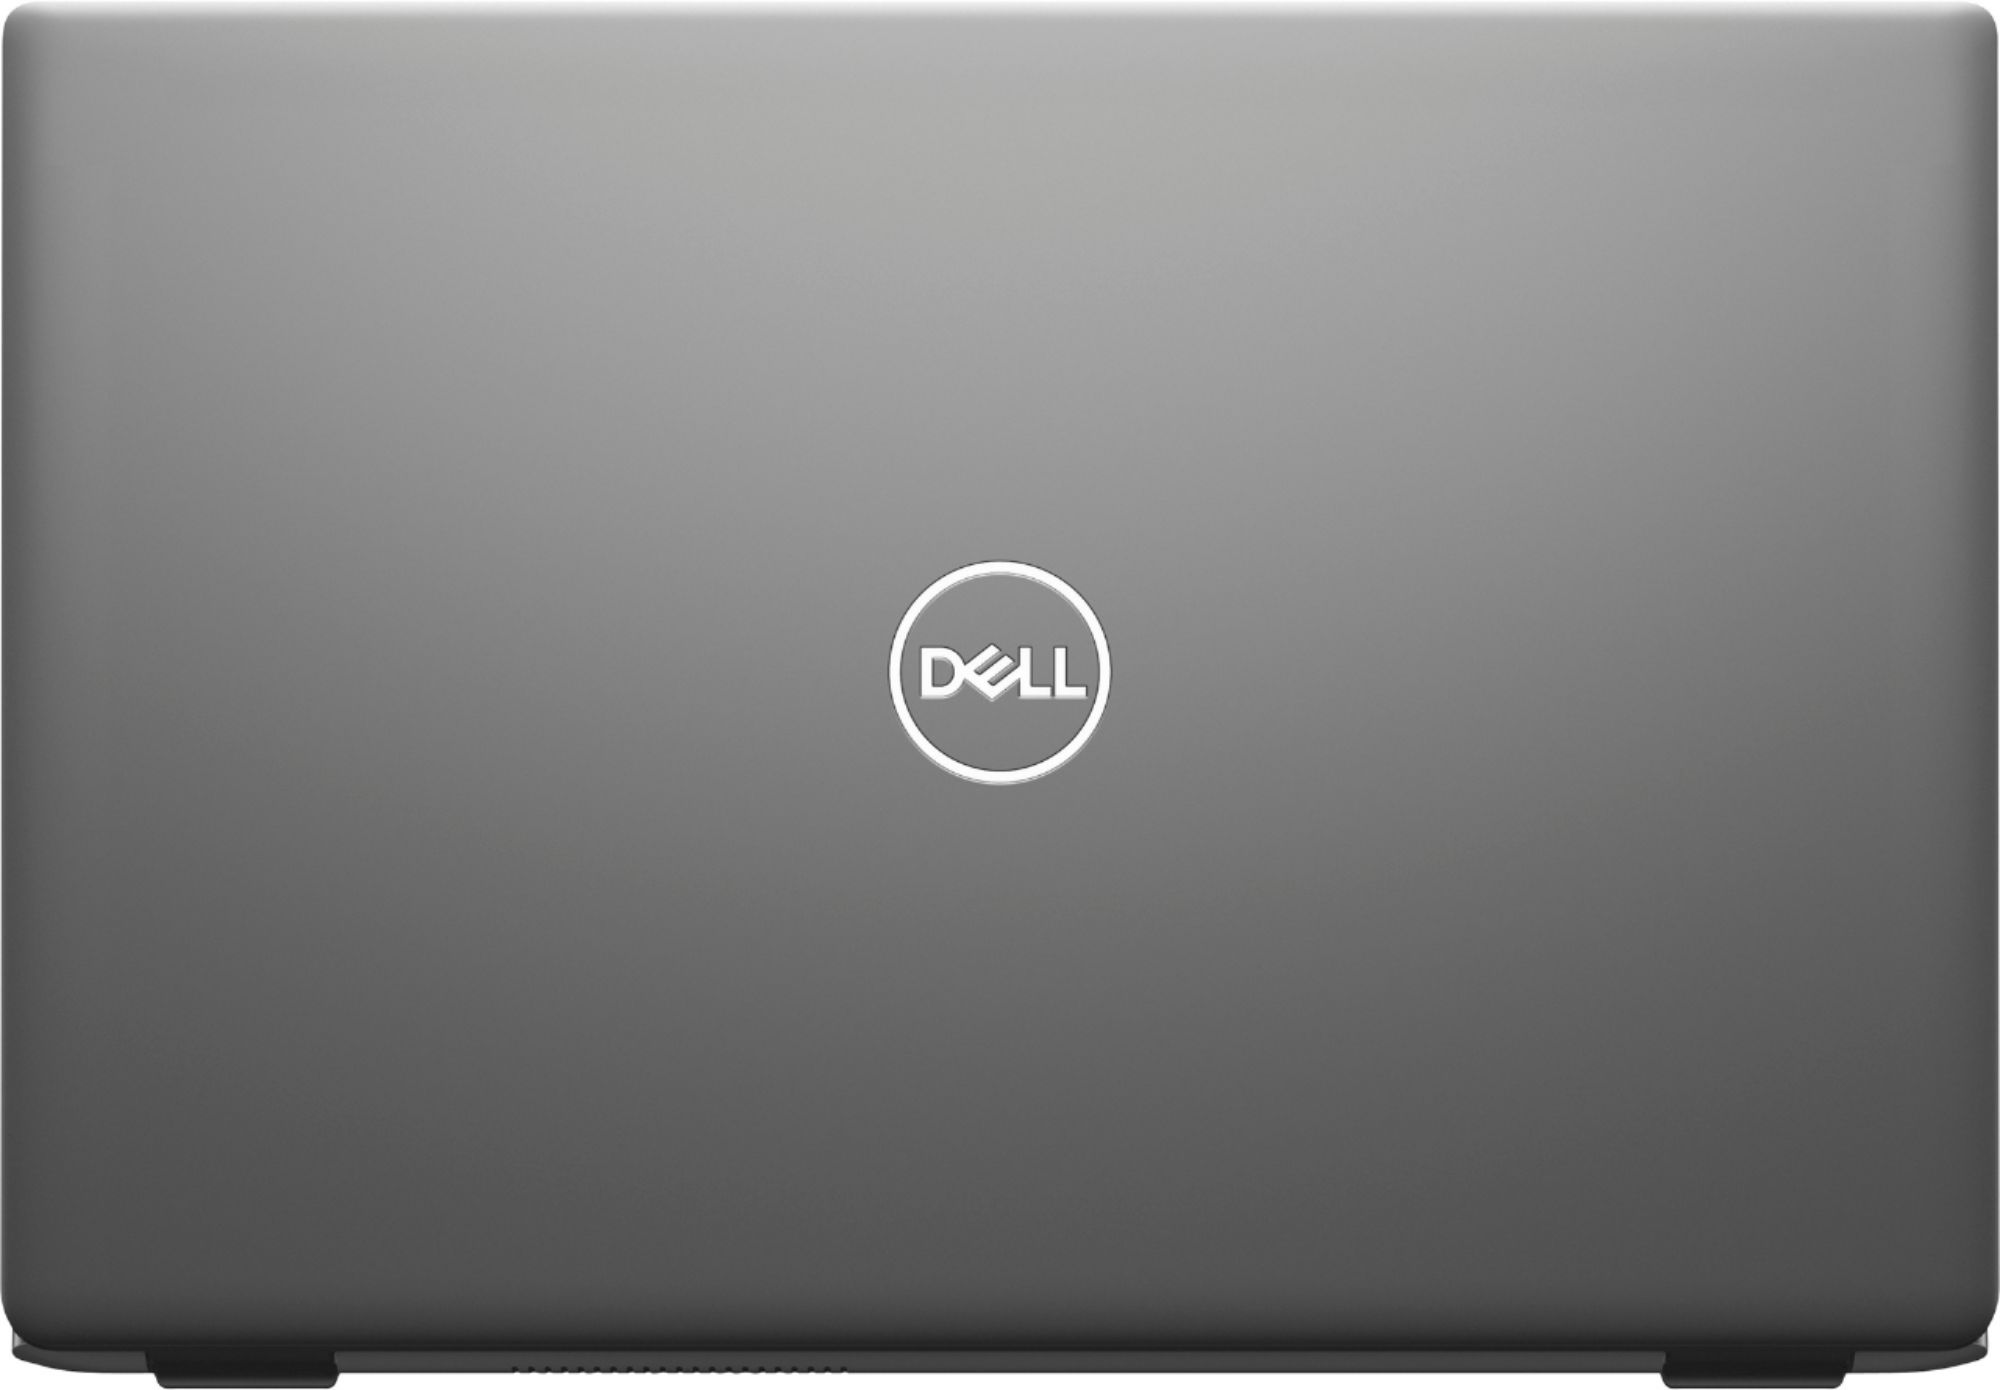 "Alt View Zoom 14. Dell - Latitude 3000 15.6"" Laptop - Intel Core i5 - 8 GB Memory - 500 GB HDD - Gray."